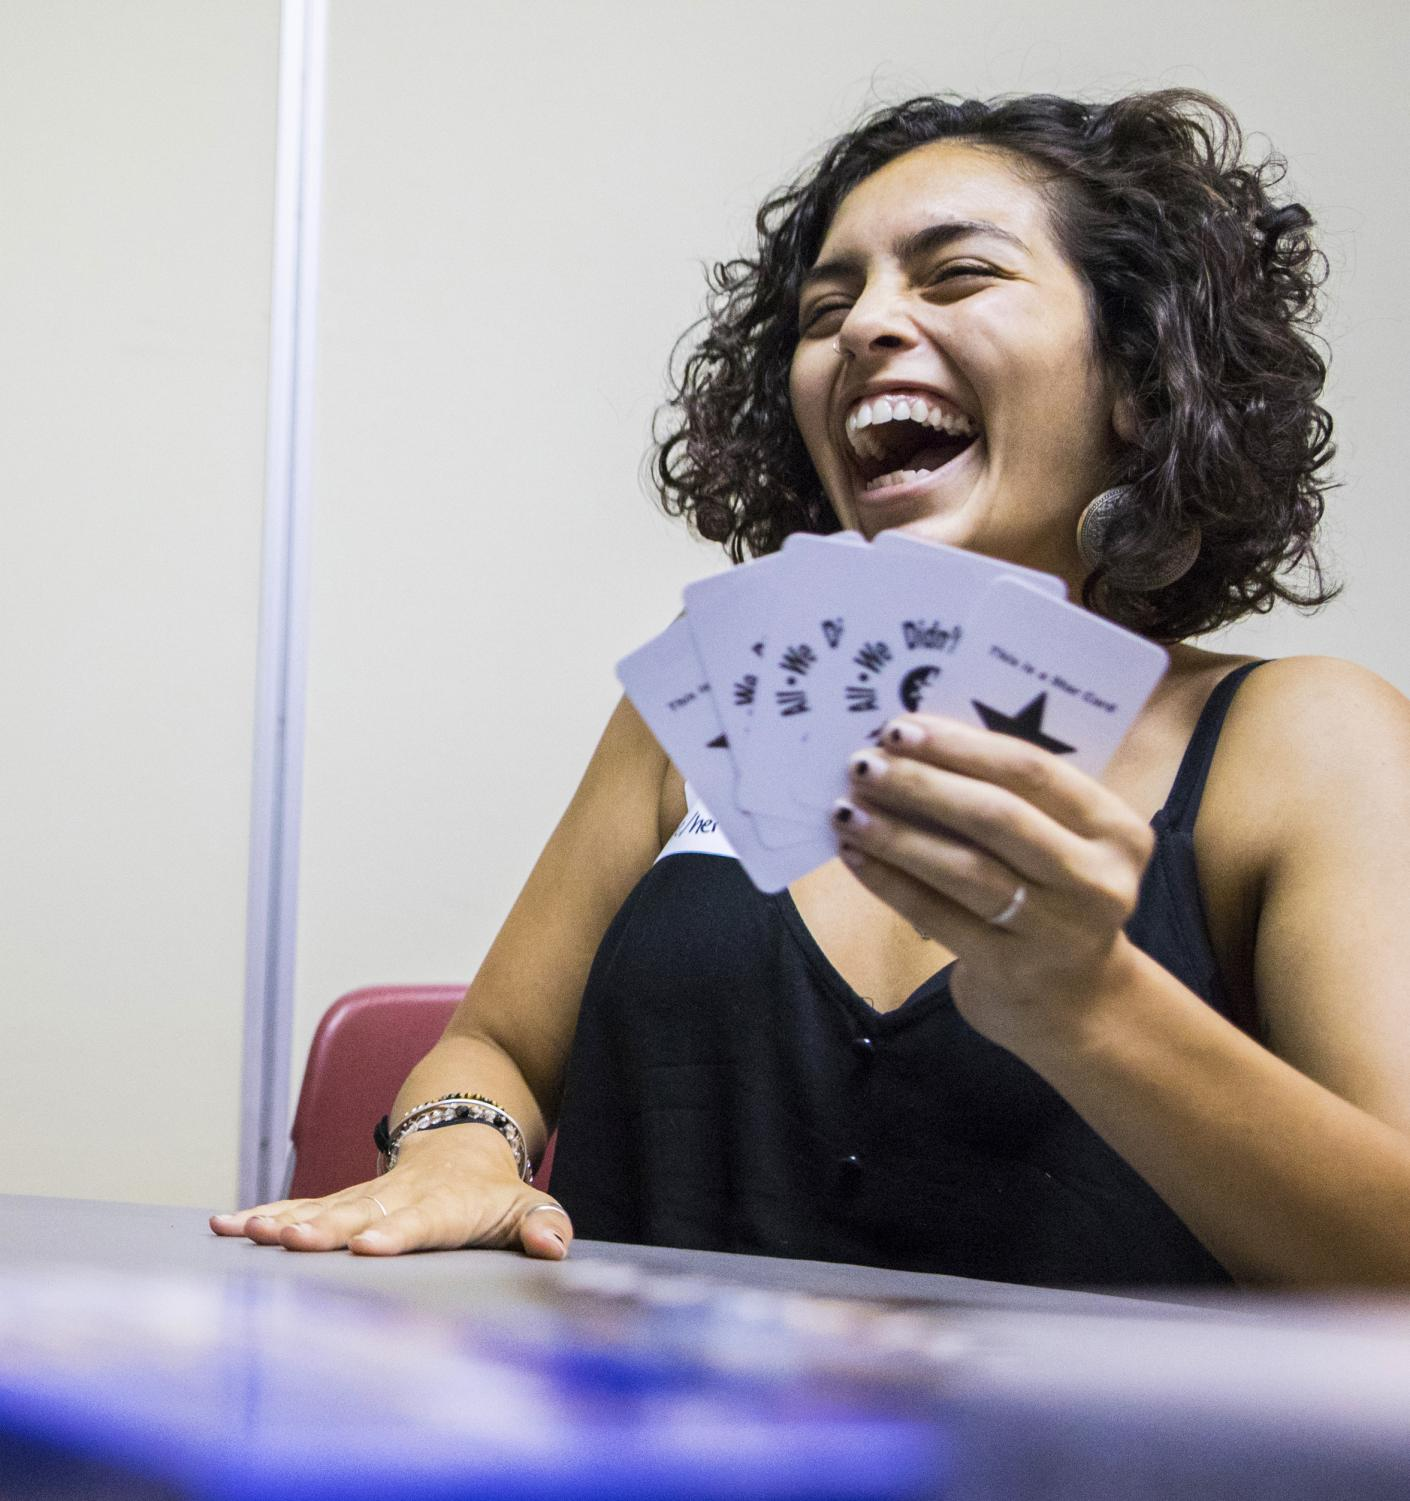 Shayla, a graduate student at SIU, plays a card game Friday, Sept. 14, 2018, after the A.L.I.A.S. RSO meeting at the Student Center. Shayla said she joined the group because it fits in with her lifestyle and sexual identity. (Corrin Hunt | @CorrinlHunt)